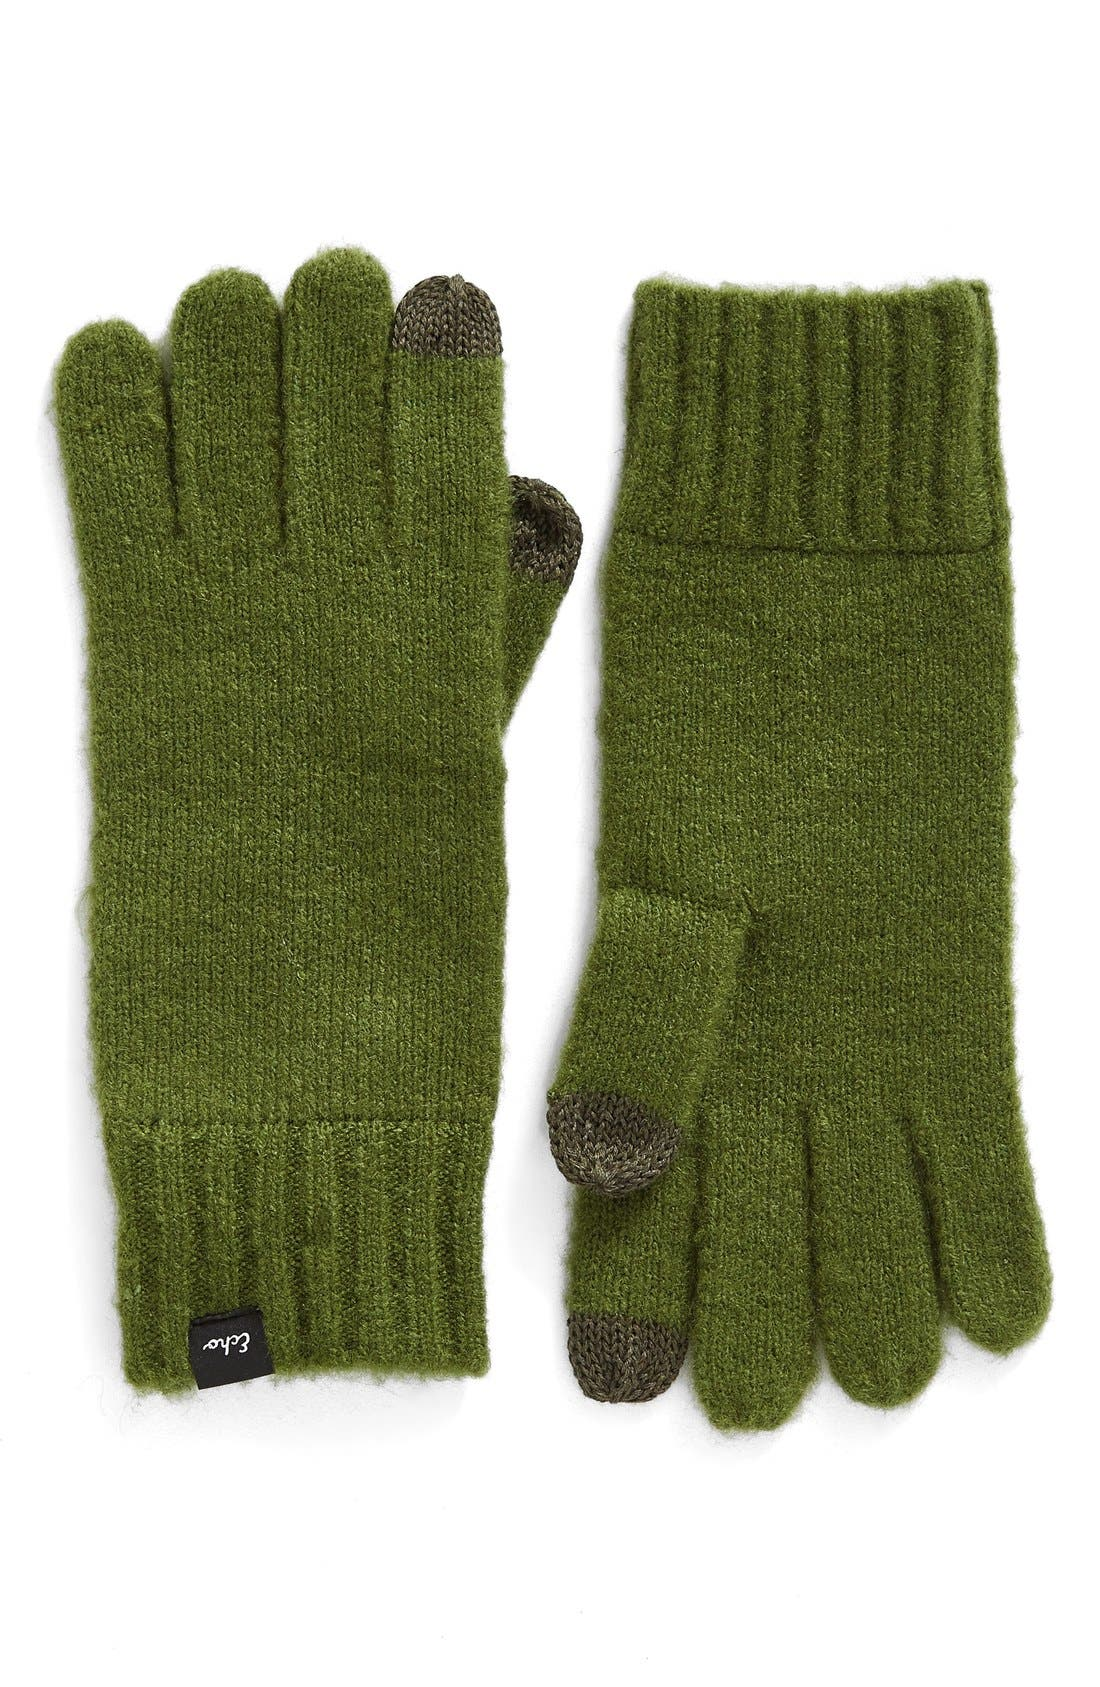 Alternate Image 1 Selected - Echo 'Touch' Stretch Fleece Tech Gloves